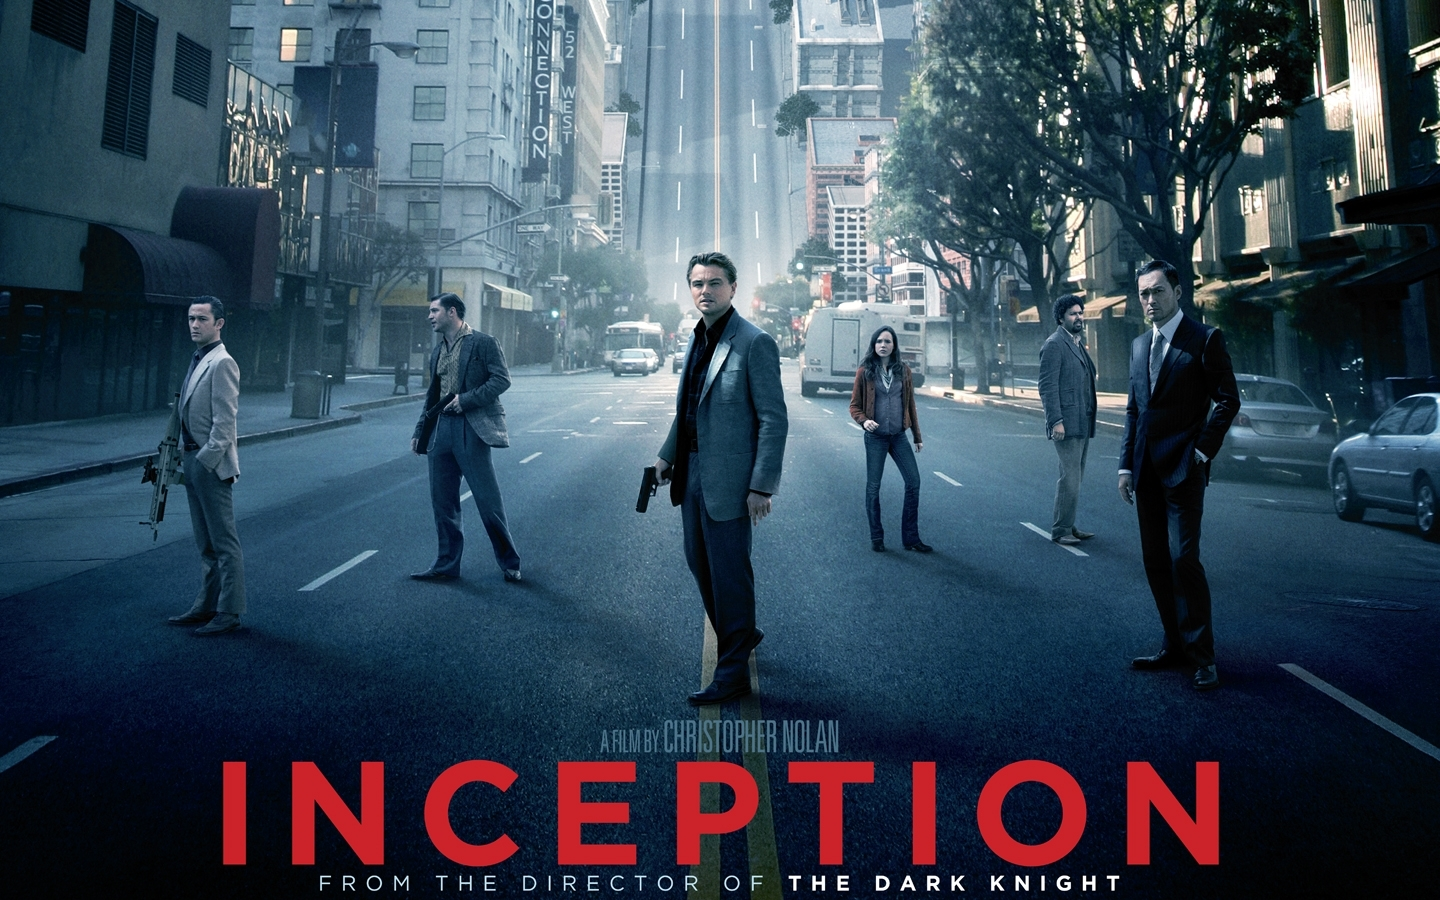 Inception-Wallpaper-inception-2010-12396931-1440-900.jpg